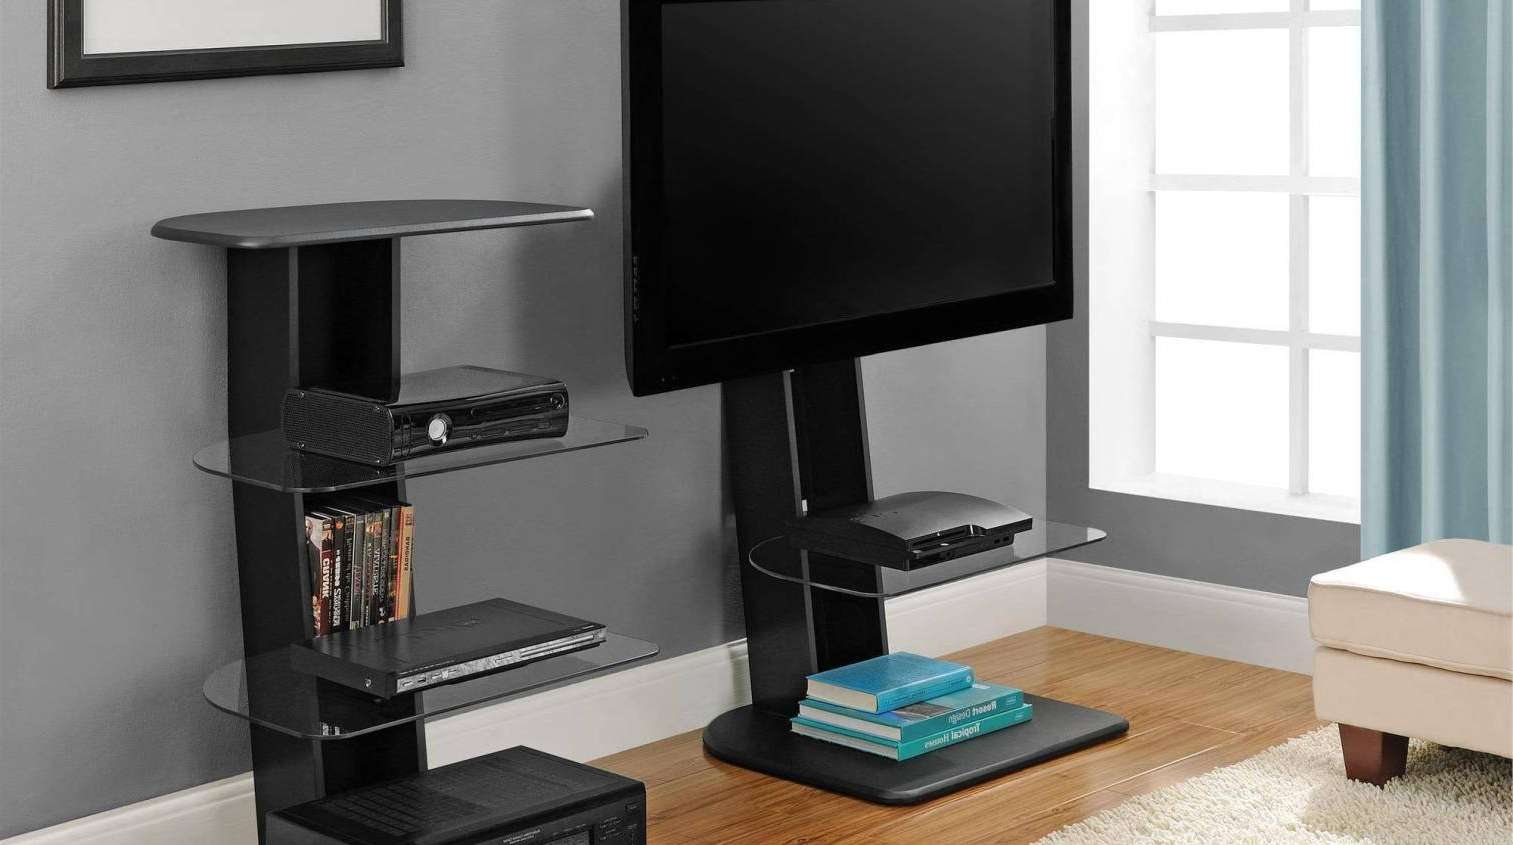 Tv : Exquisite 65 Inch Tv Stands With Integrated Mount Interesting For 65 Inch Tv Stands With Integrated Mount (View 5 of 15)